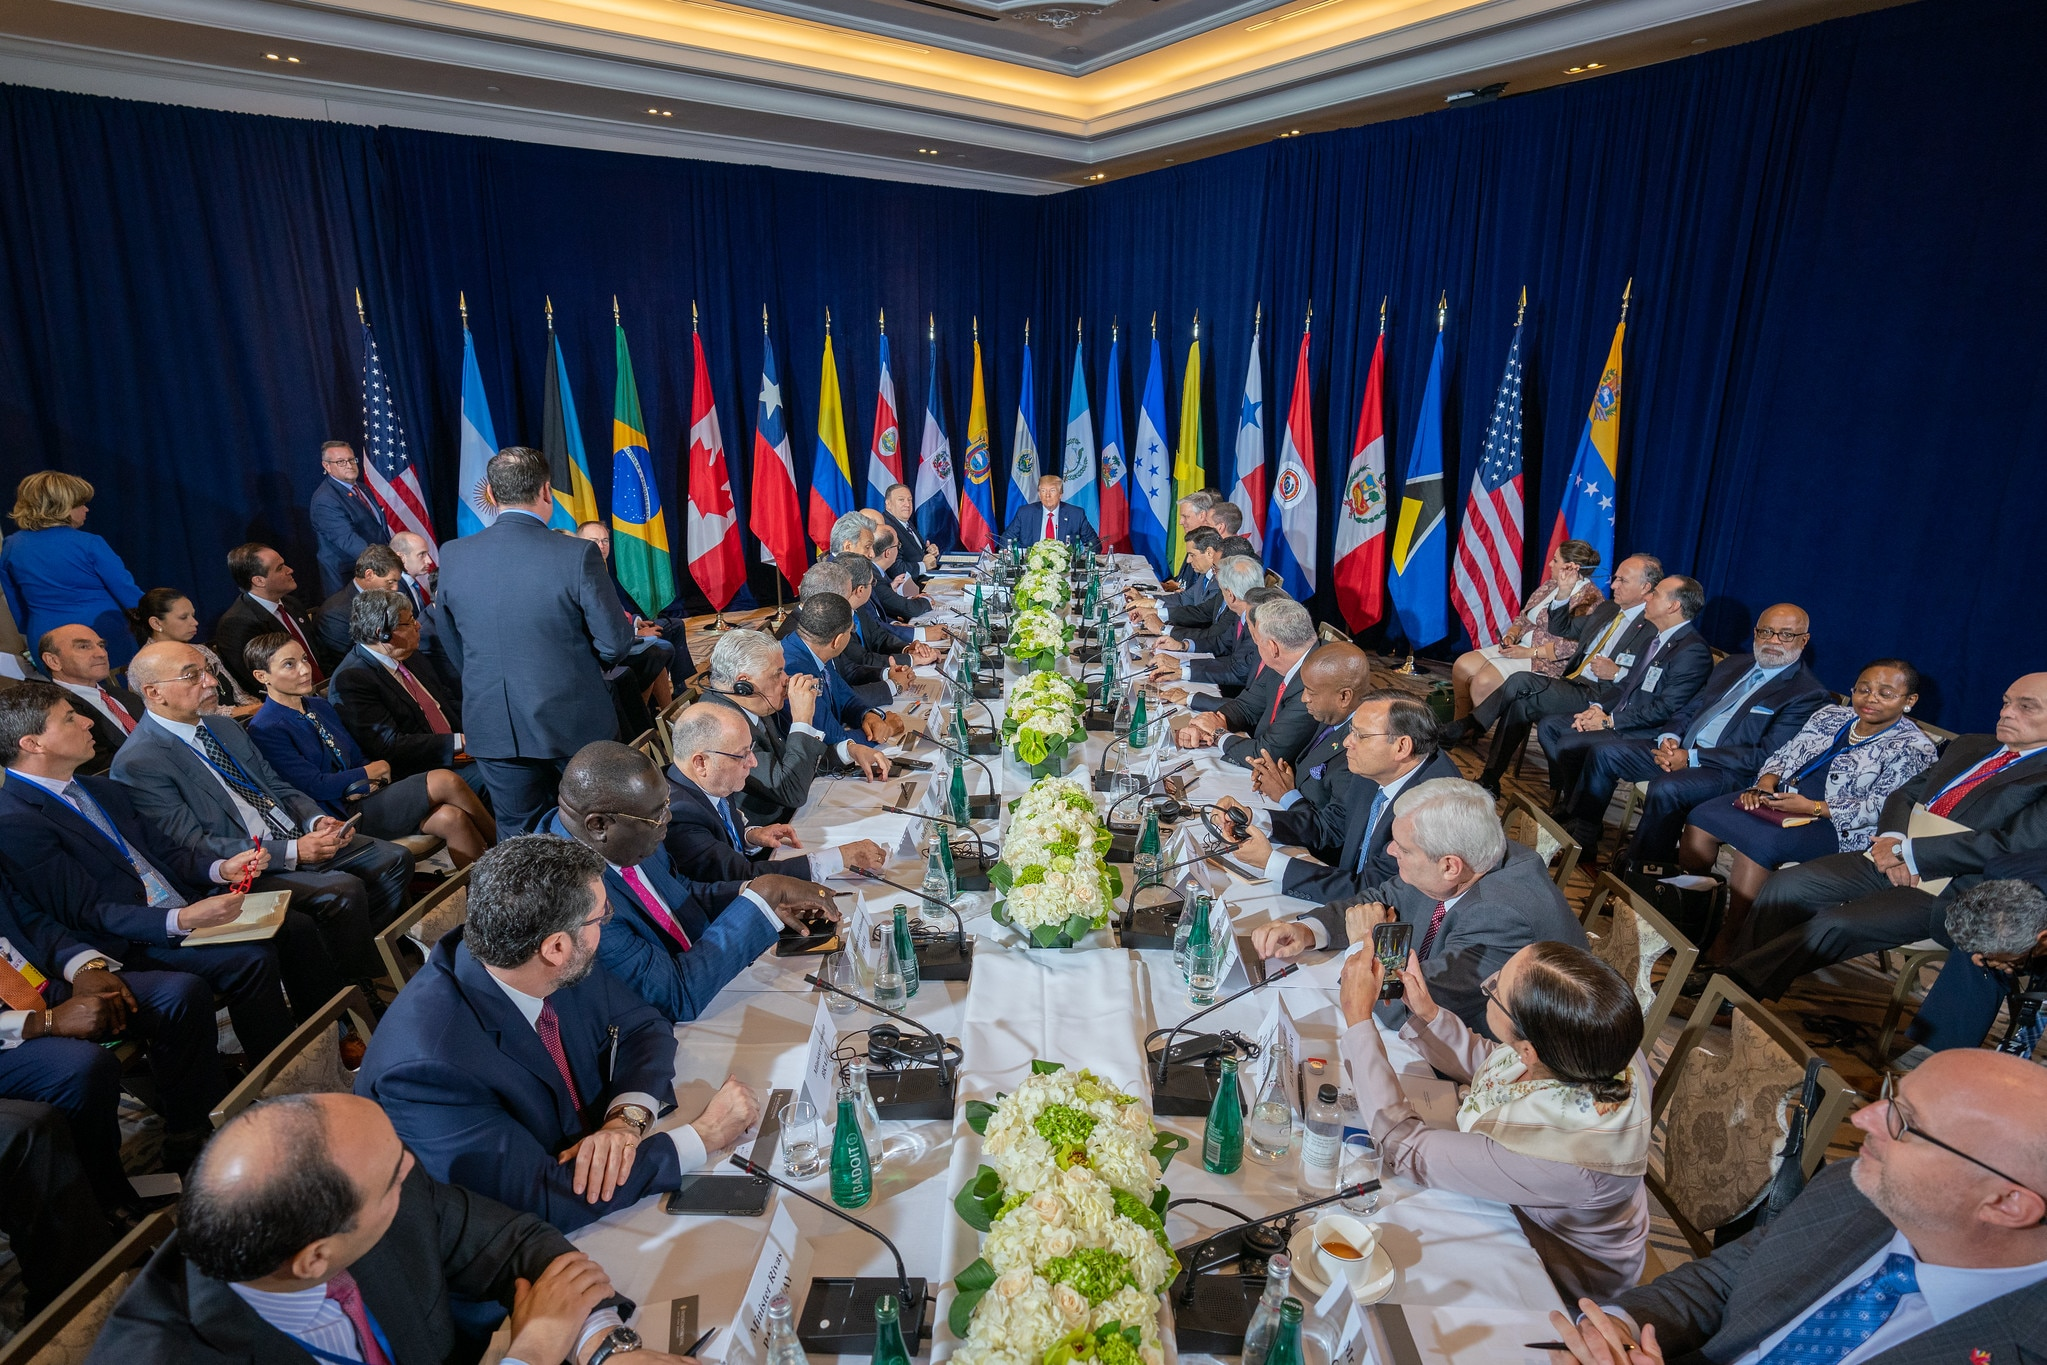 U.S. Secretary of State Michael R. Pompeo participates in meeting on Venezuela hosted by President Donald J. Trump in New York City, New York on September 25, 2019. [State Department photo by Ron Przysucha/ Public Domain]